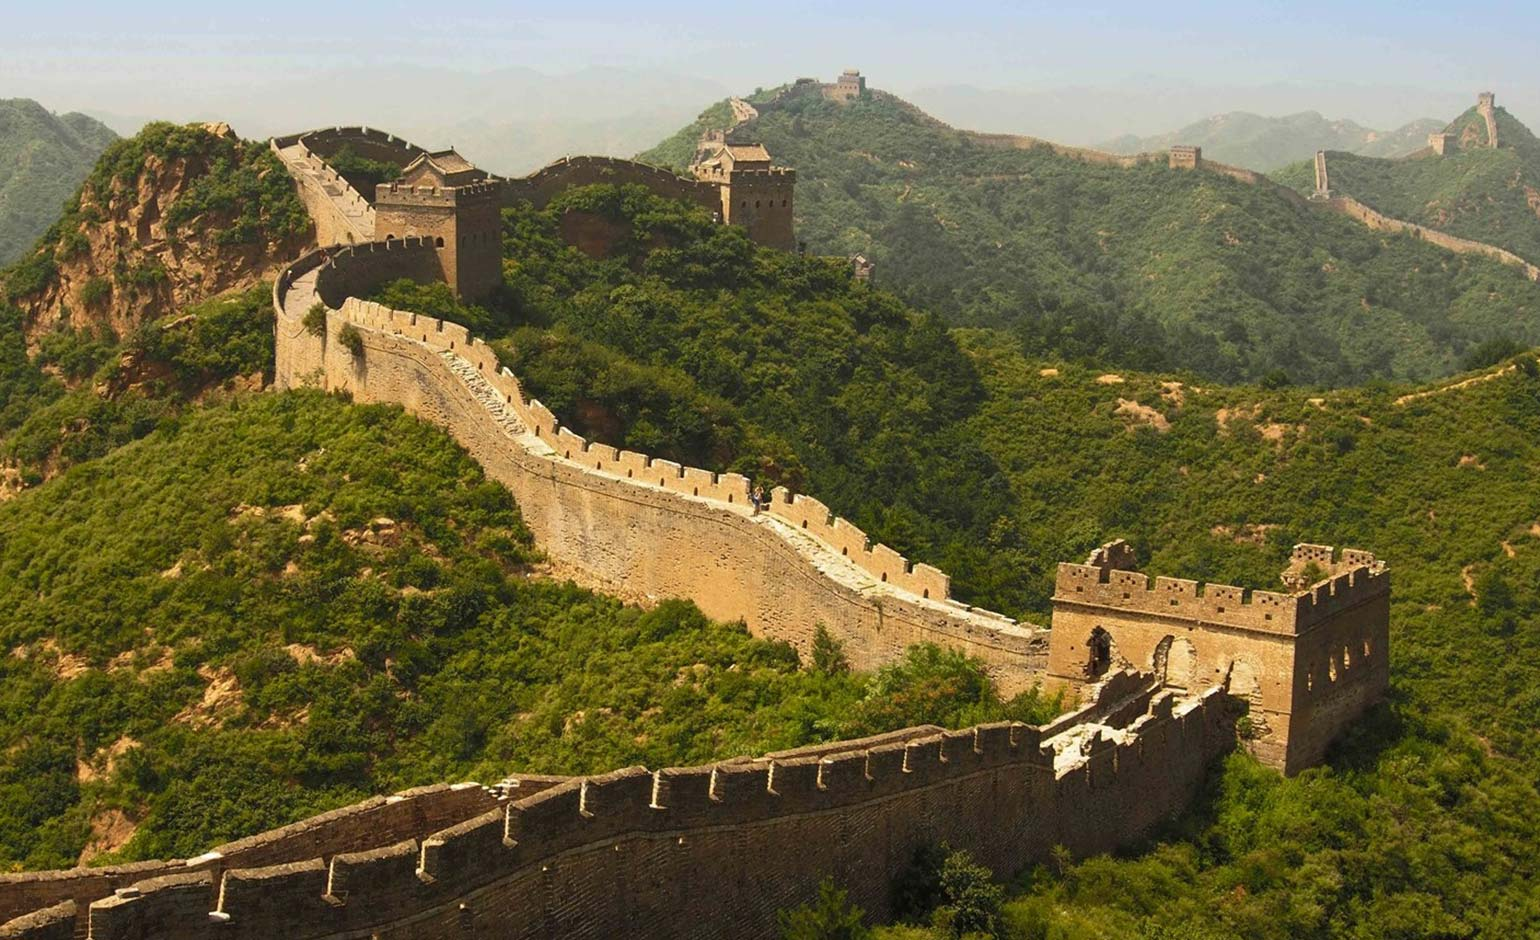 Bath family to trek Great Wall of China in aid of RUH's new Cancer Centre